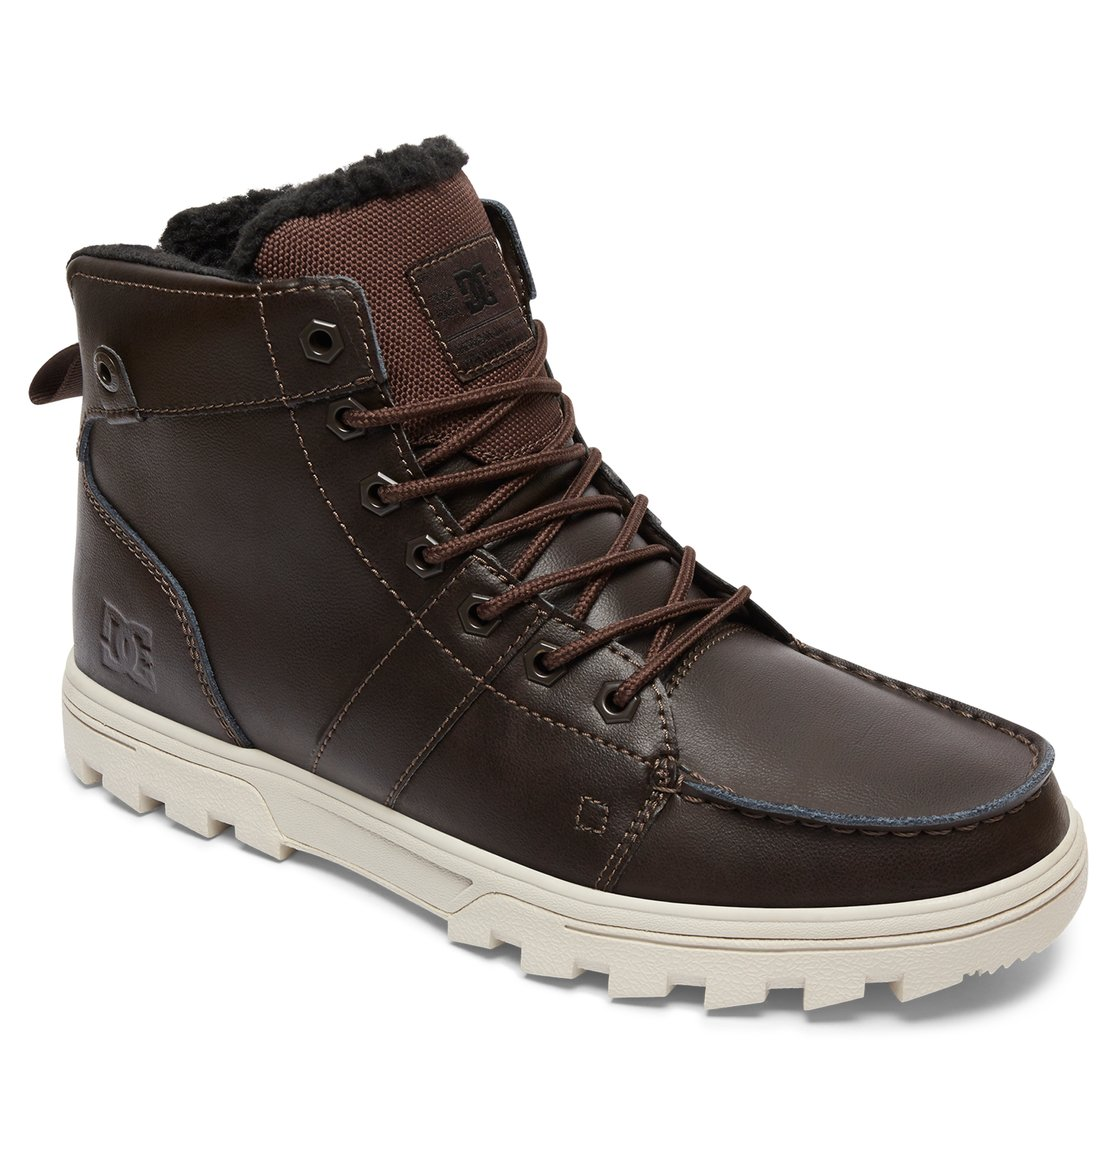 DC-Shoes-Woodland-Outdoor-Winter-Boots-hombre